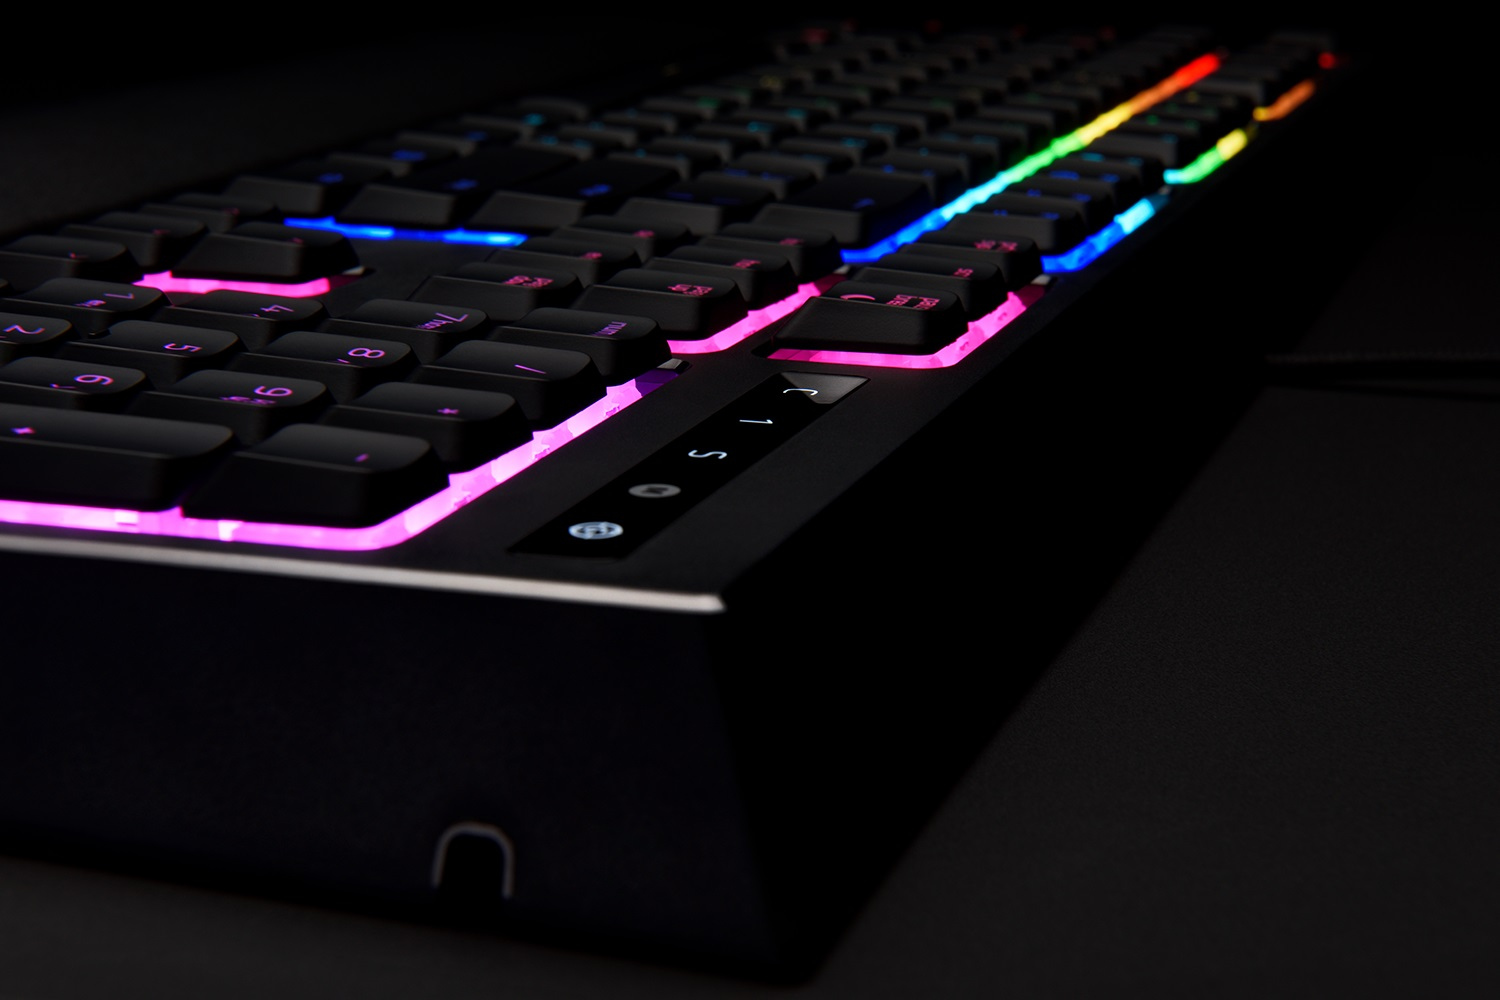 Razer's New 'Mecha-Membrane' Switch And Ornata Chroma Keyboard